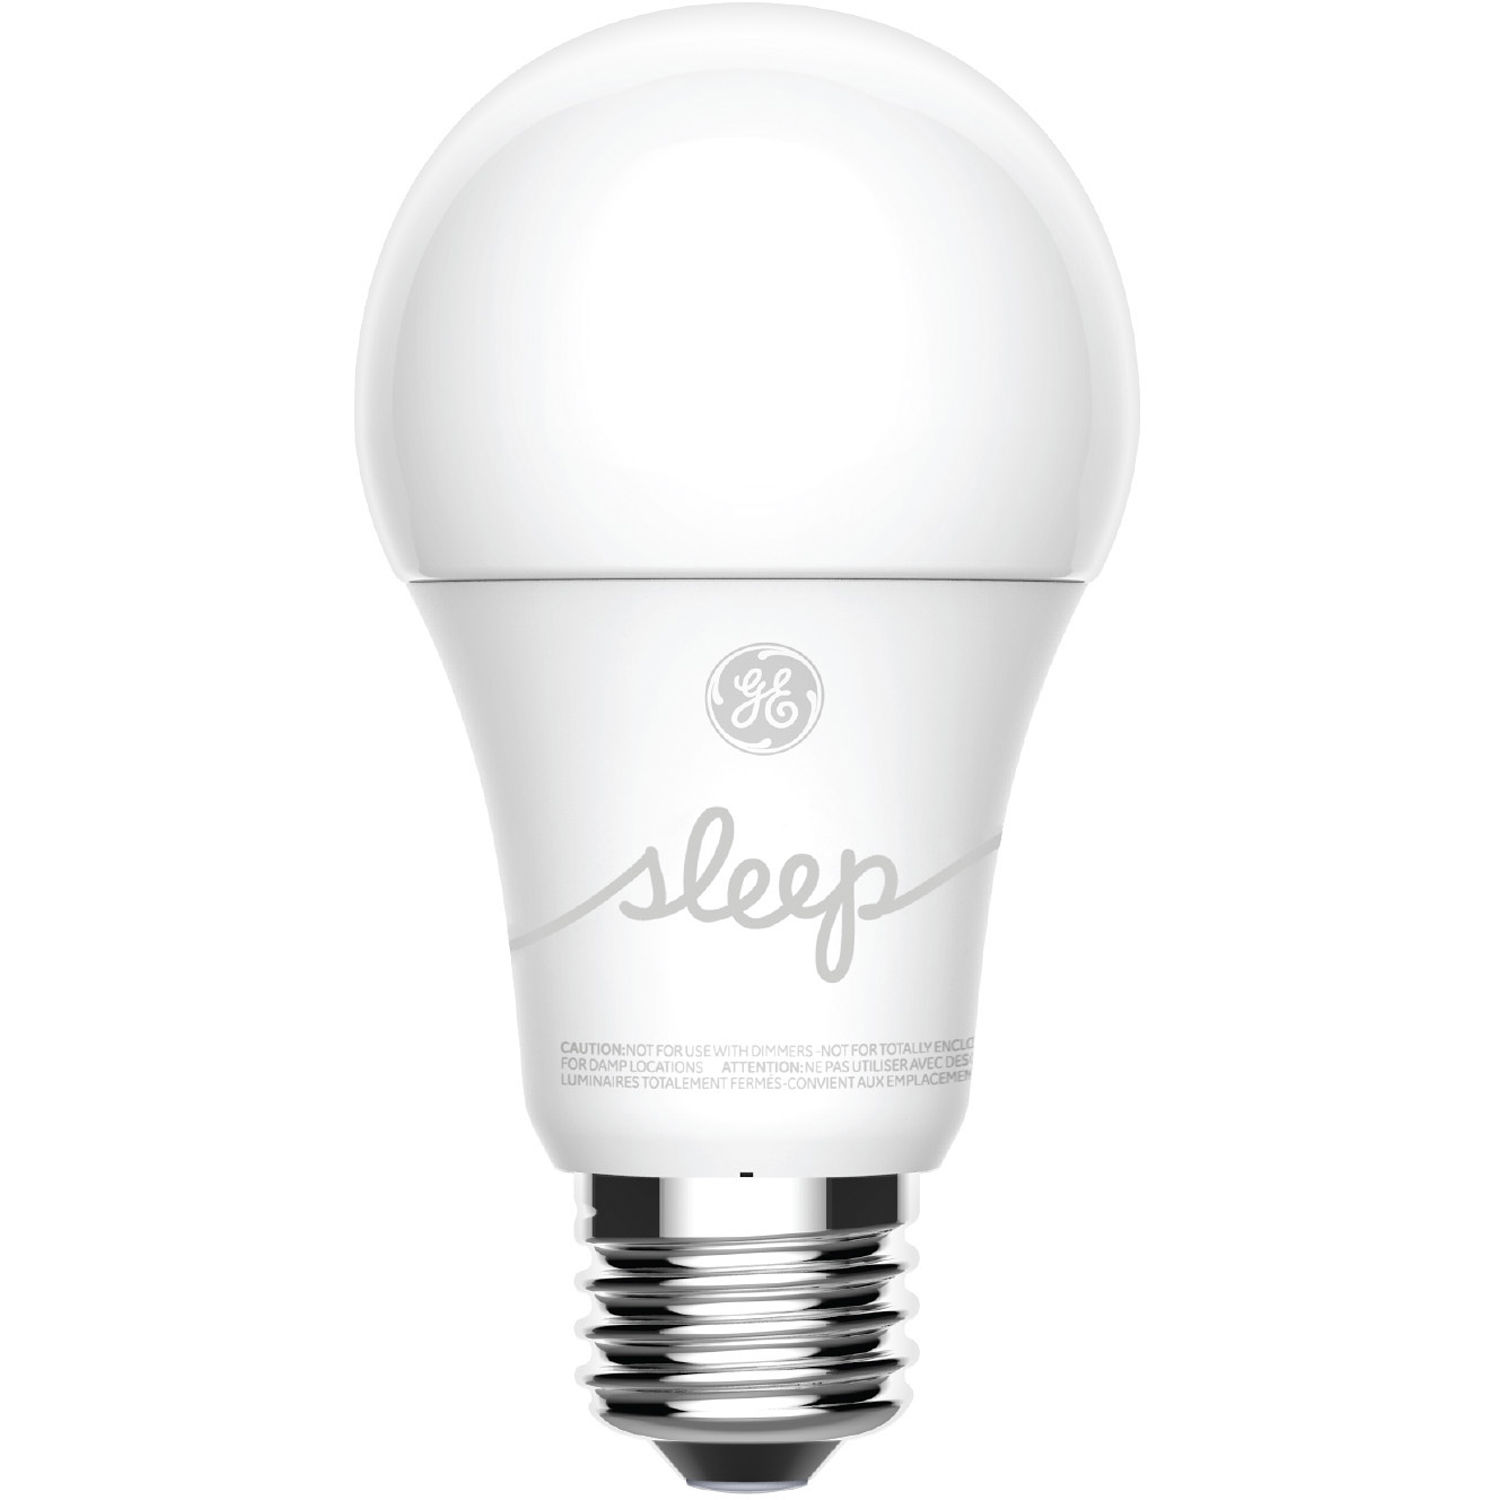 General Electric Led Bulbs: General Electric C-Sleep A19 Smart LED Light Bulb 93096307 B&H